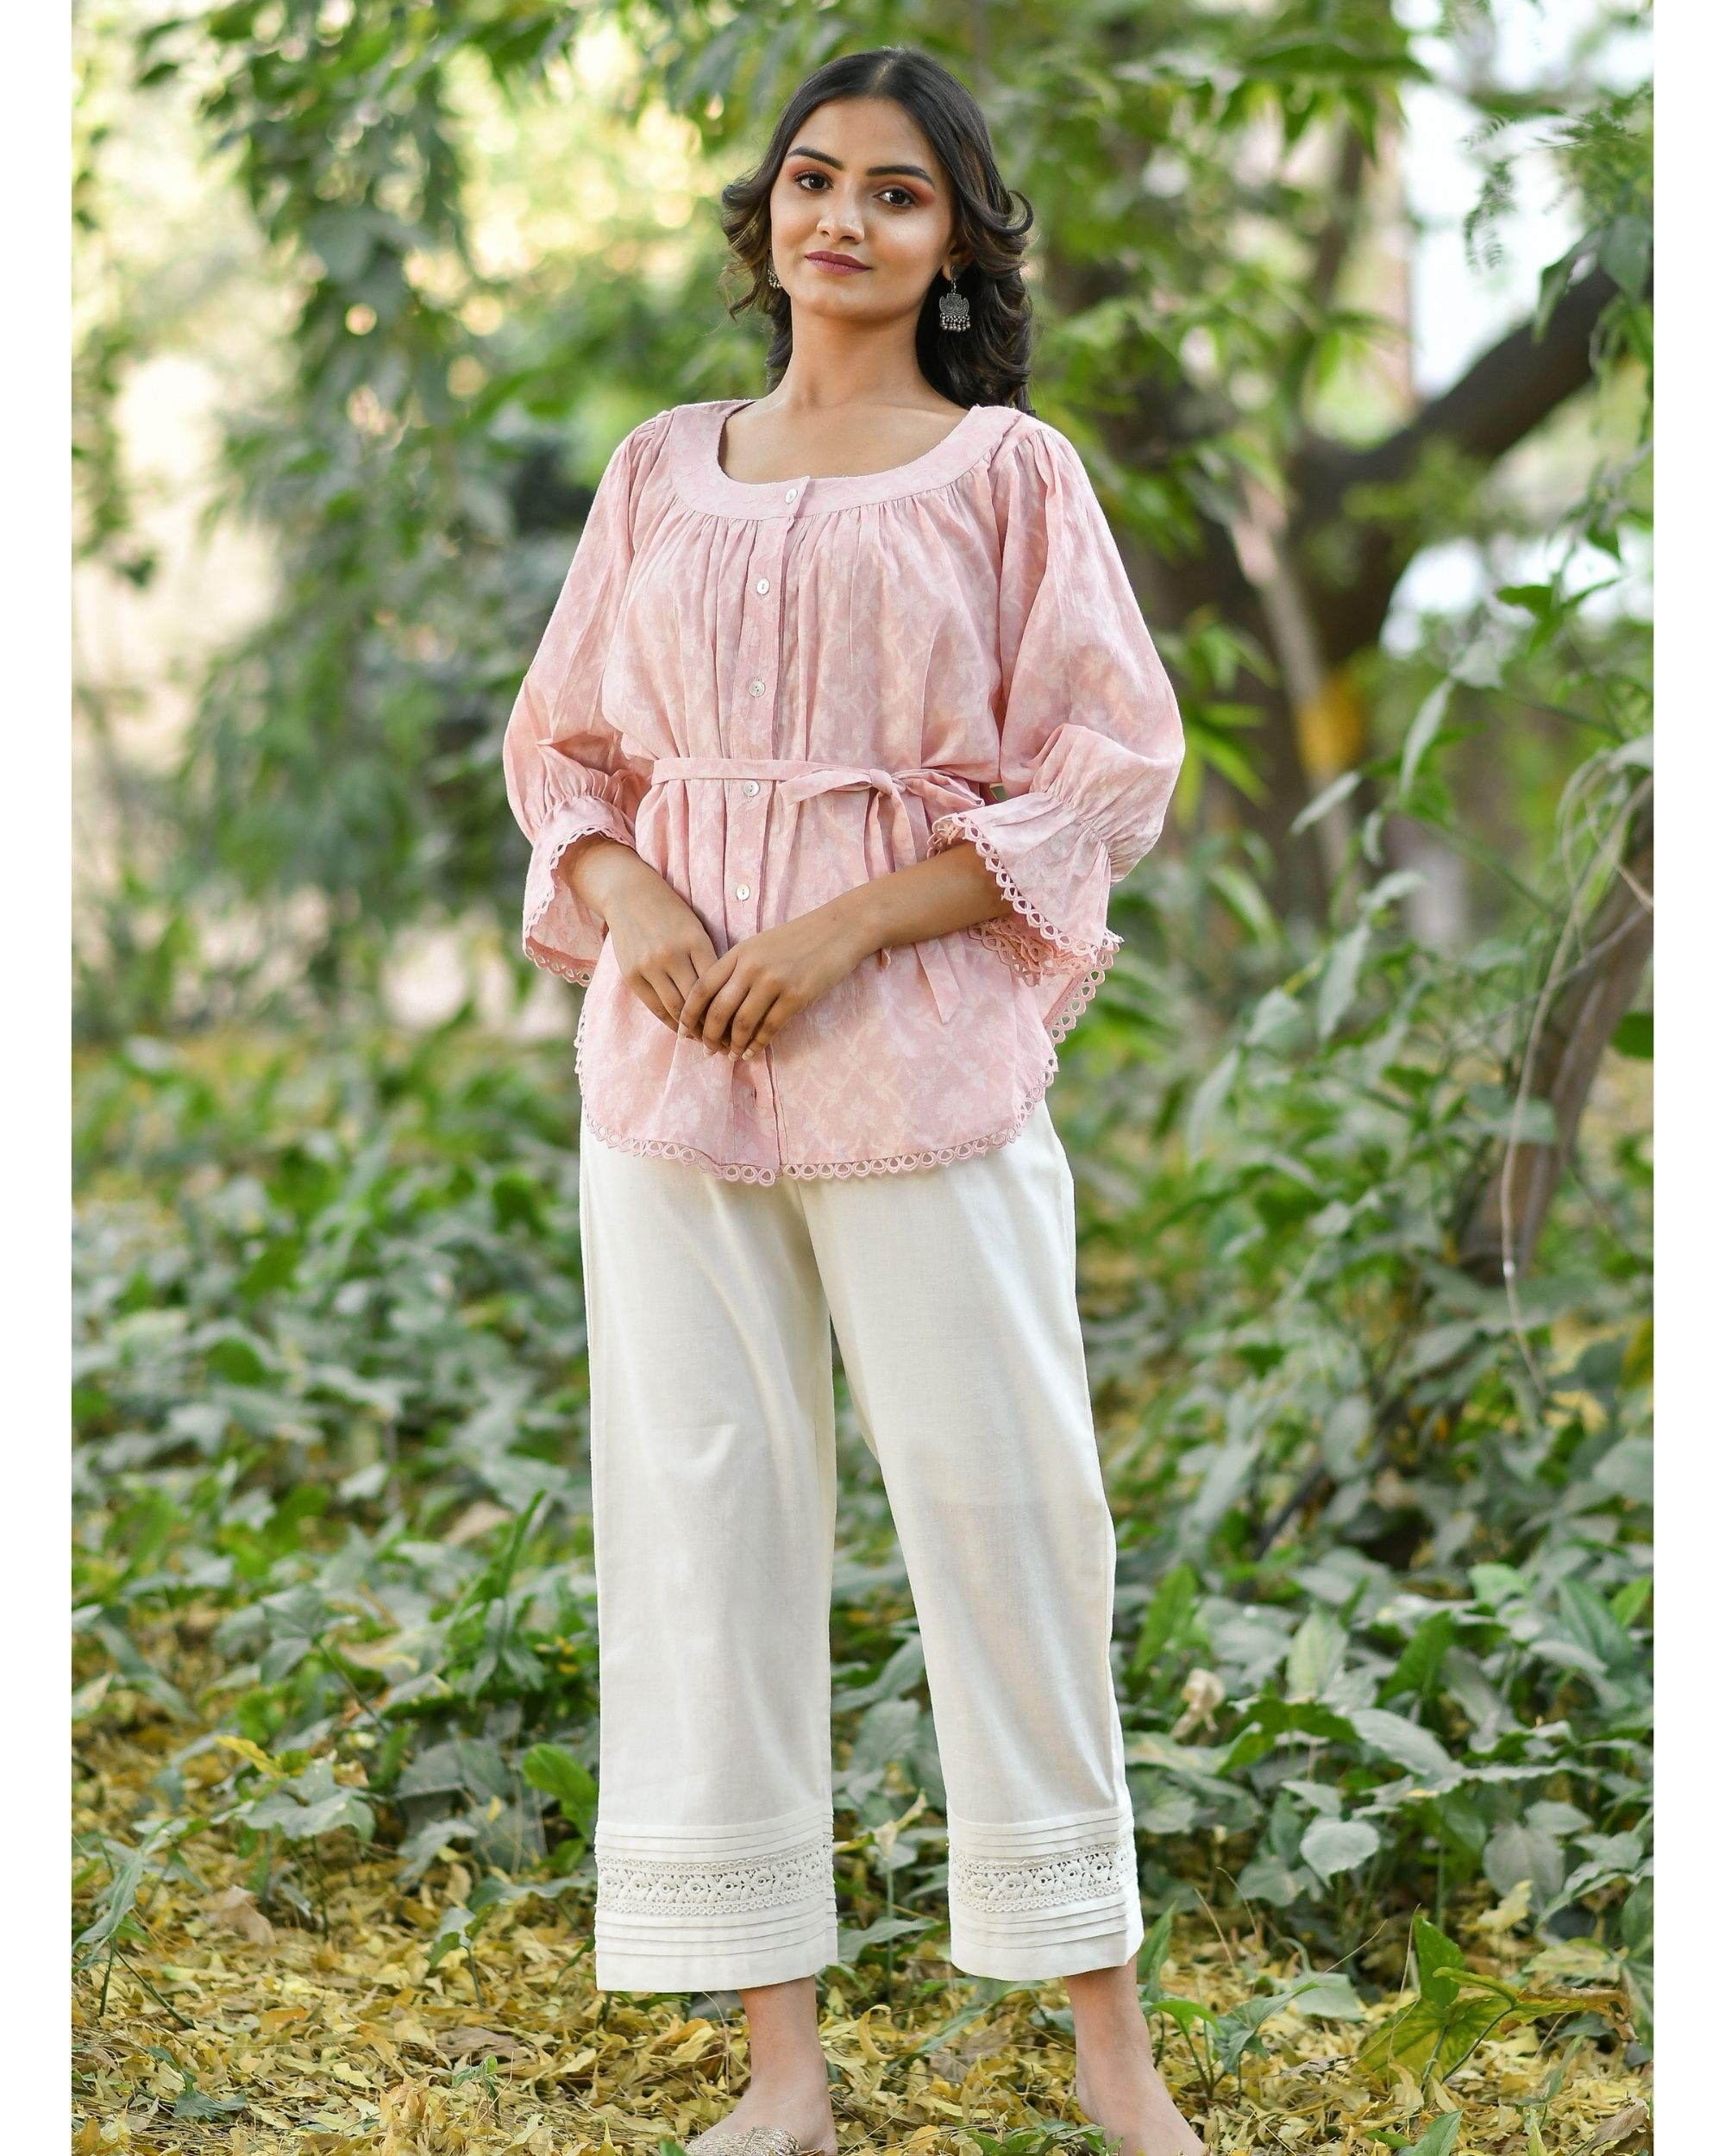 Pink jacquard top with pants - set of two